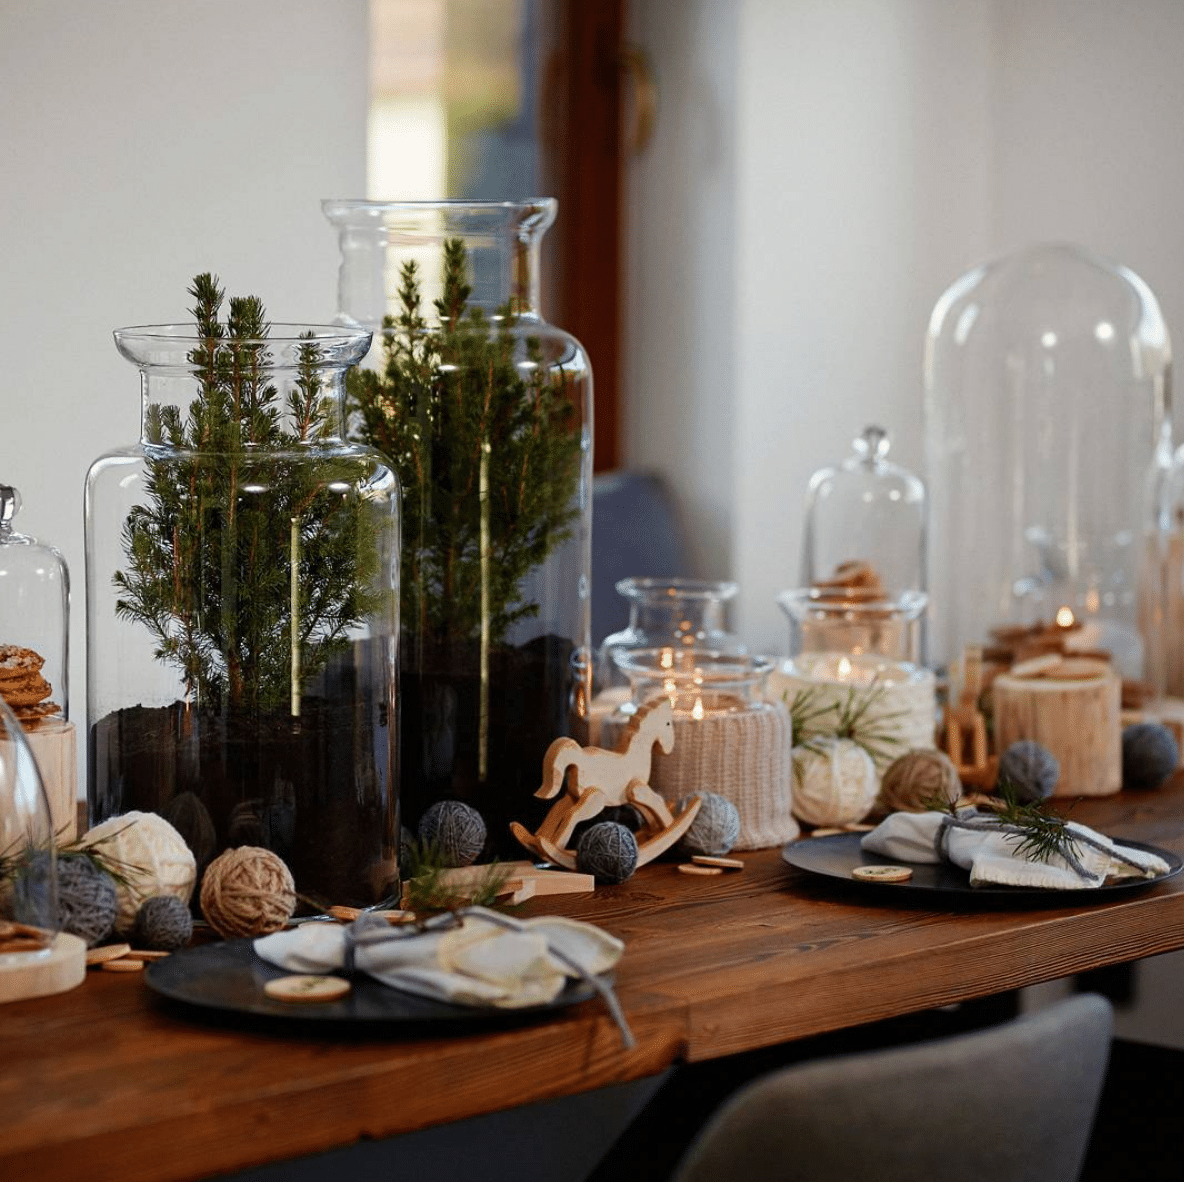 idees Décoration de table de noël - Zu design